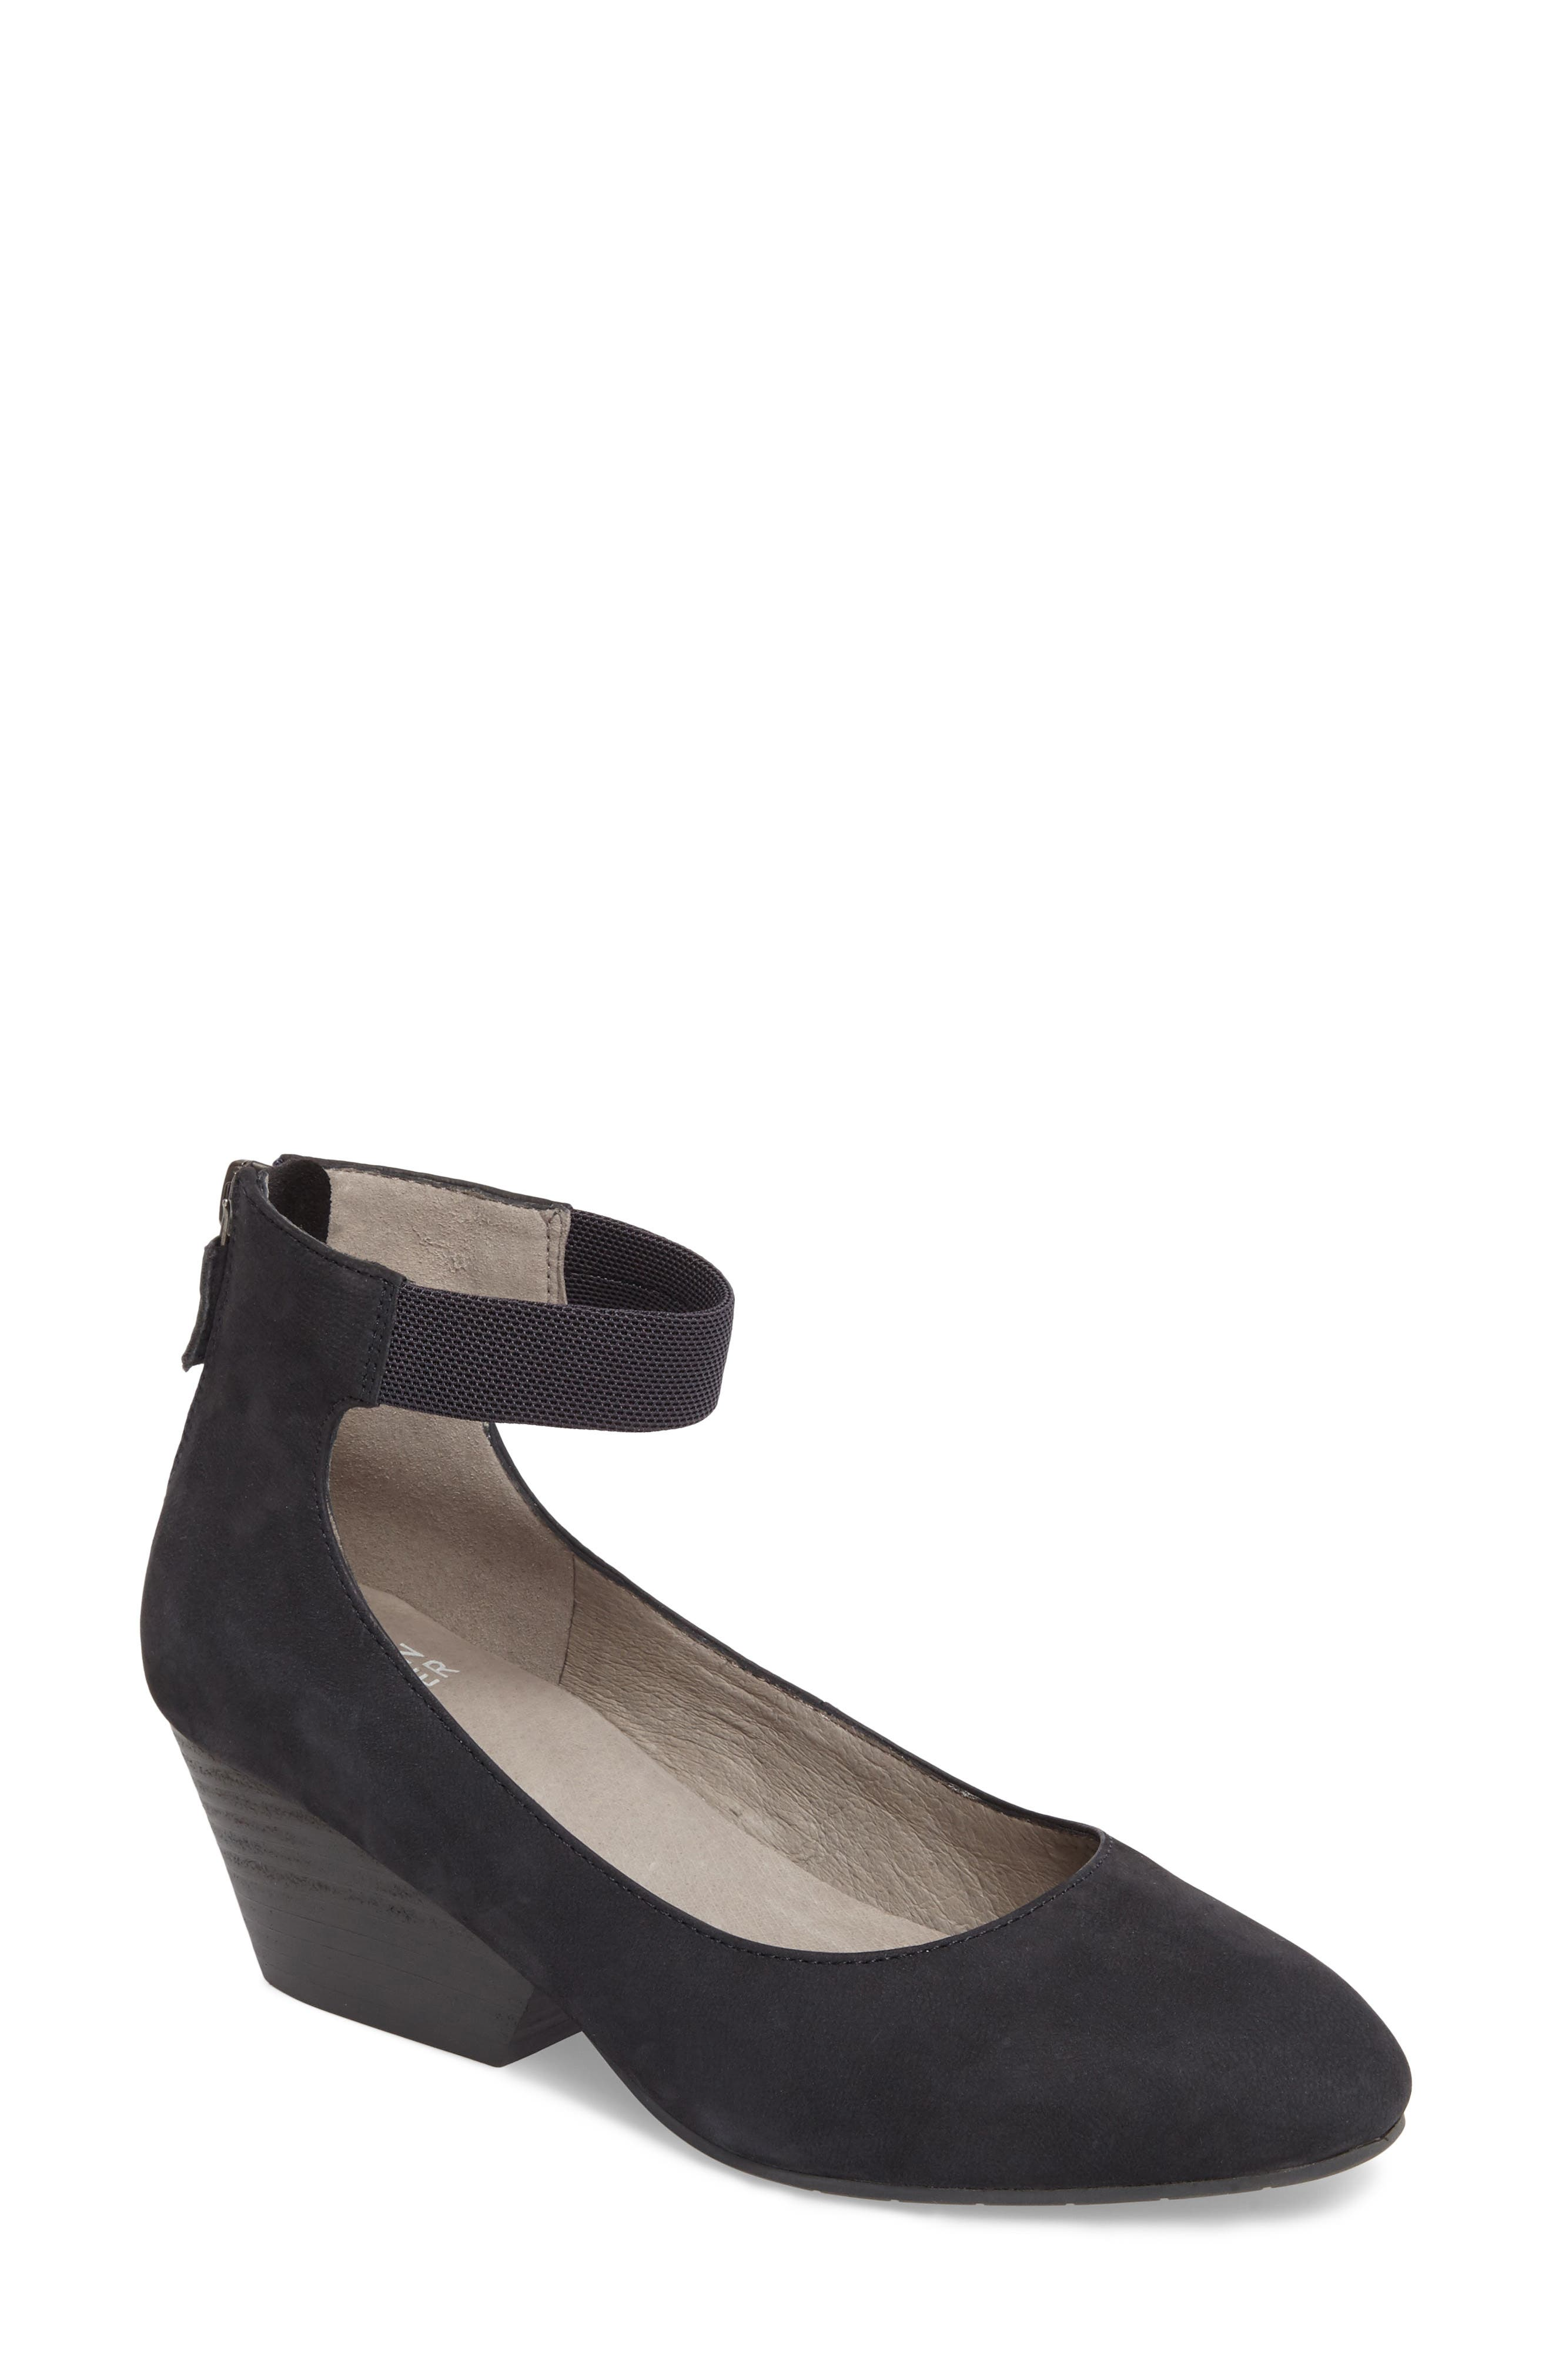 Alternate Image 1 Selected - Eileen Fisher 'Liz' Ankle Strap Pump (Women)